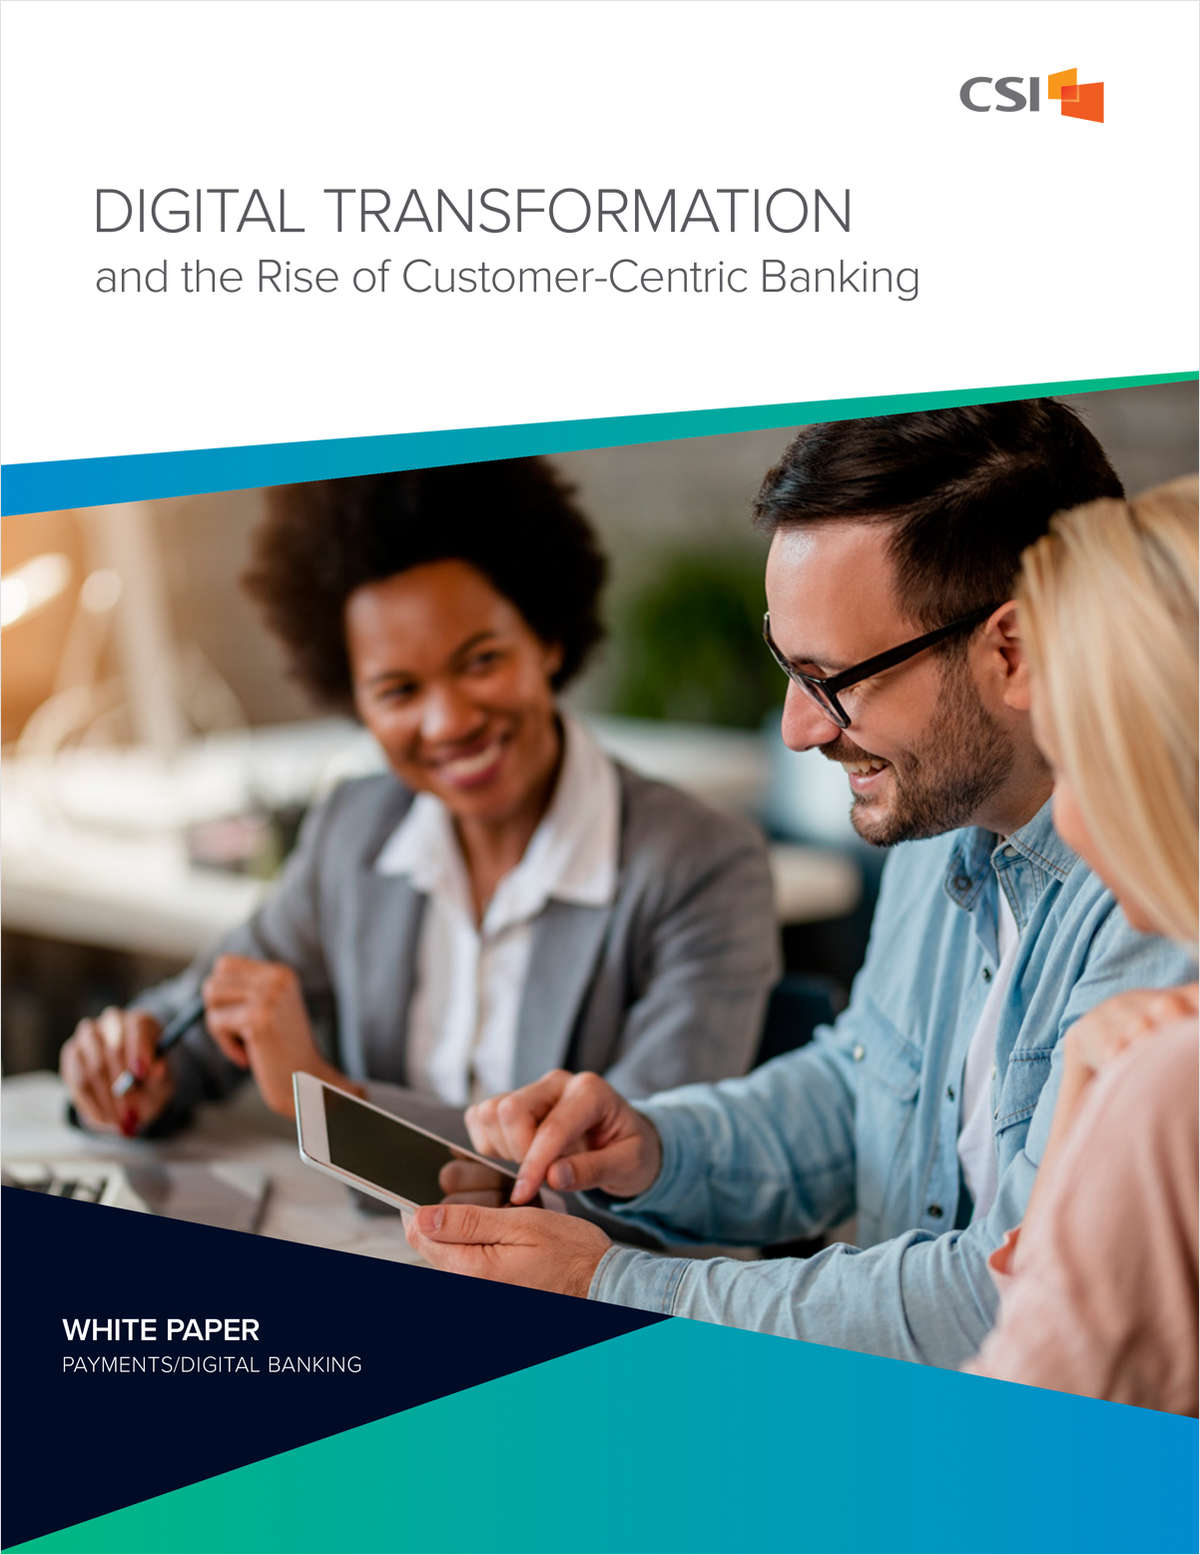 Digital Transformation and the Rise of Customer-Centric Banking